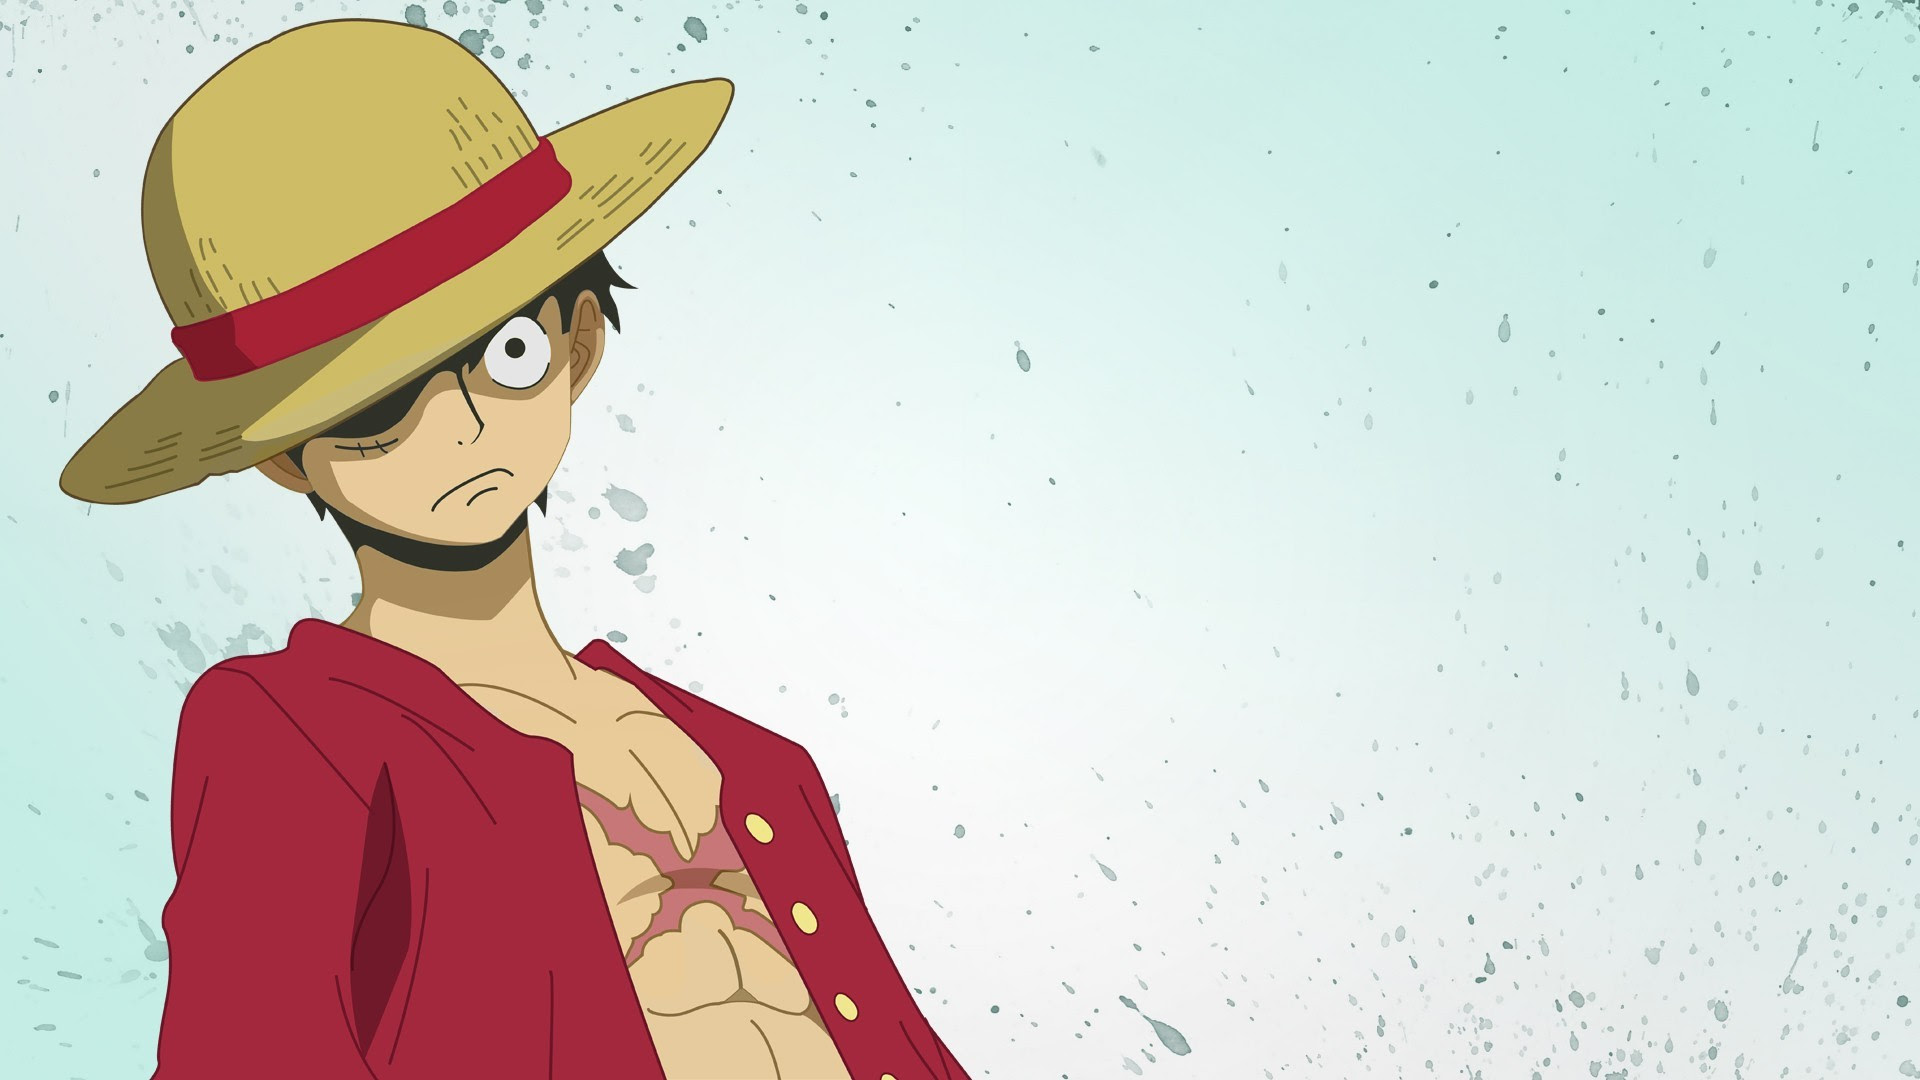 One Piece Luffy Wallpaper High Res 5807 Wallpaper Cool